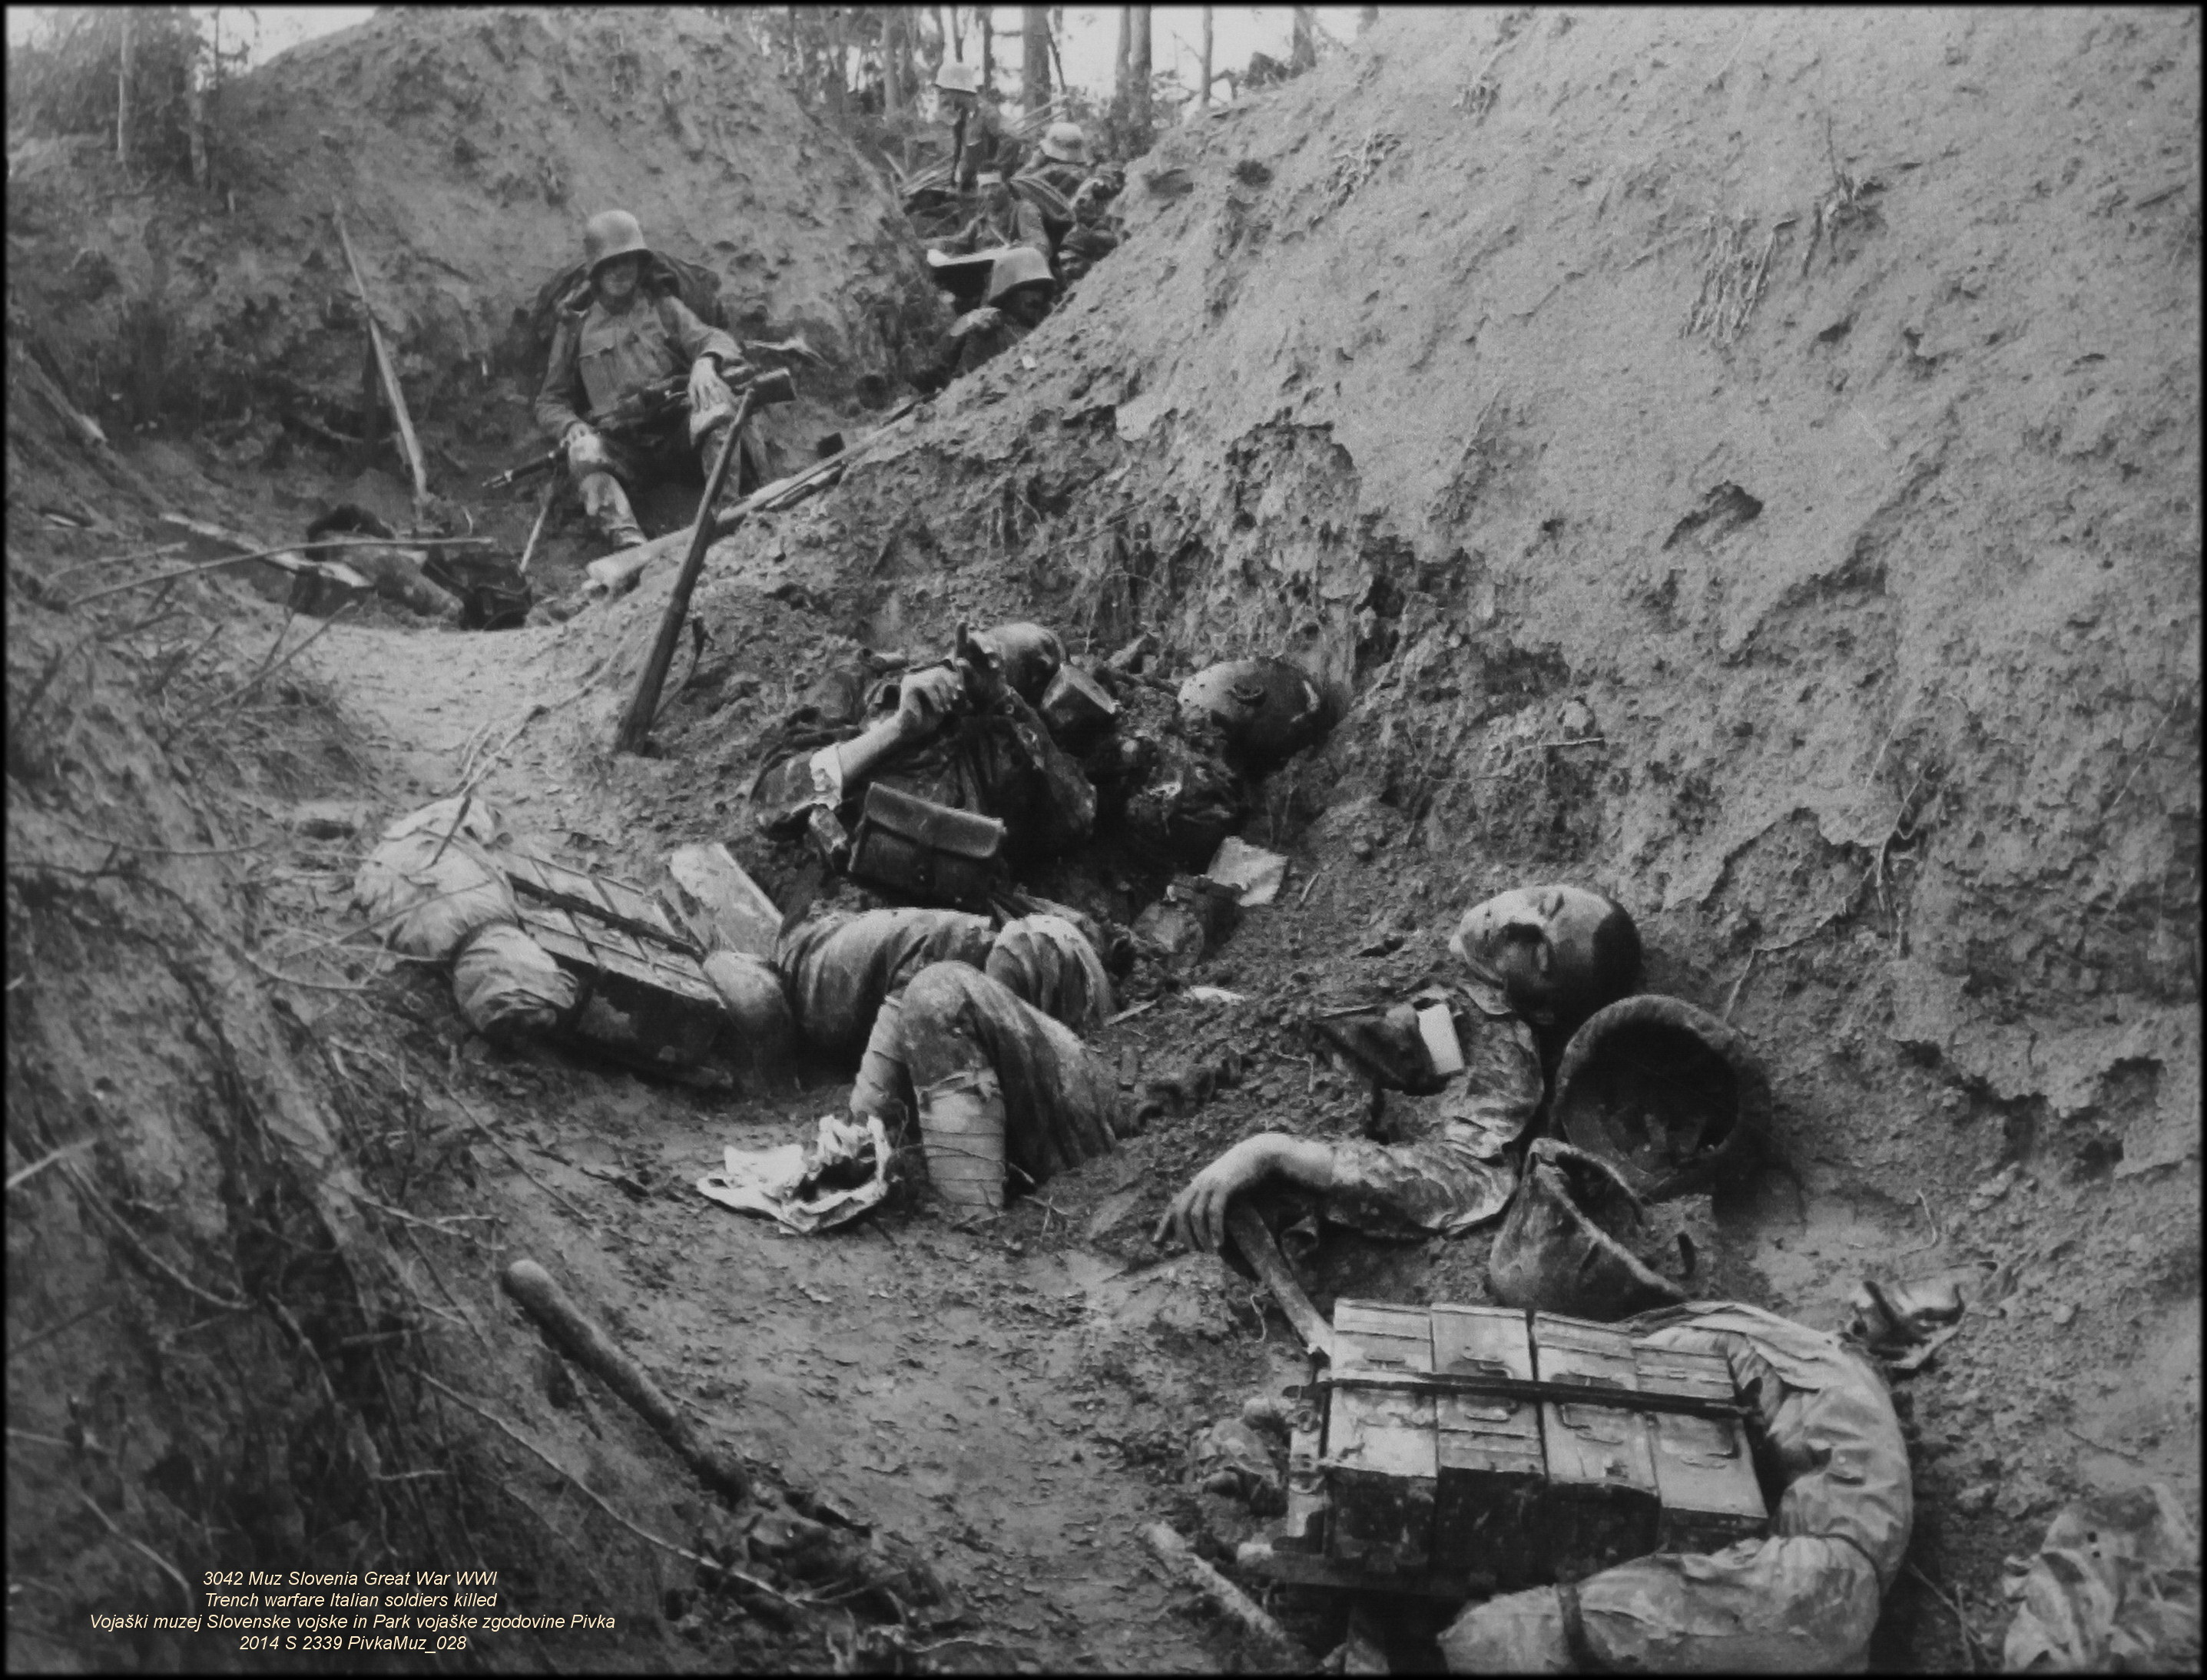 an overview of the historic trench warfare in war tactics Trench warfare soldiers pointing guns over the top of a sandbag trench - nd pictures of trenches are often used to symbolize the first world war: indeed it is rare to see an image from the conflict that does not include men in trenches, or a battle scarred landscape with trenches in it.